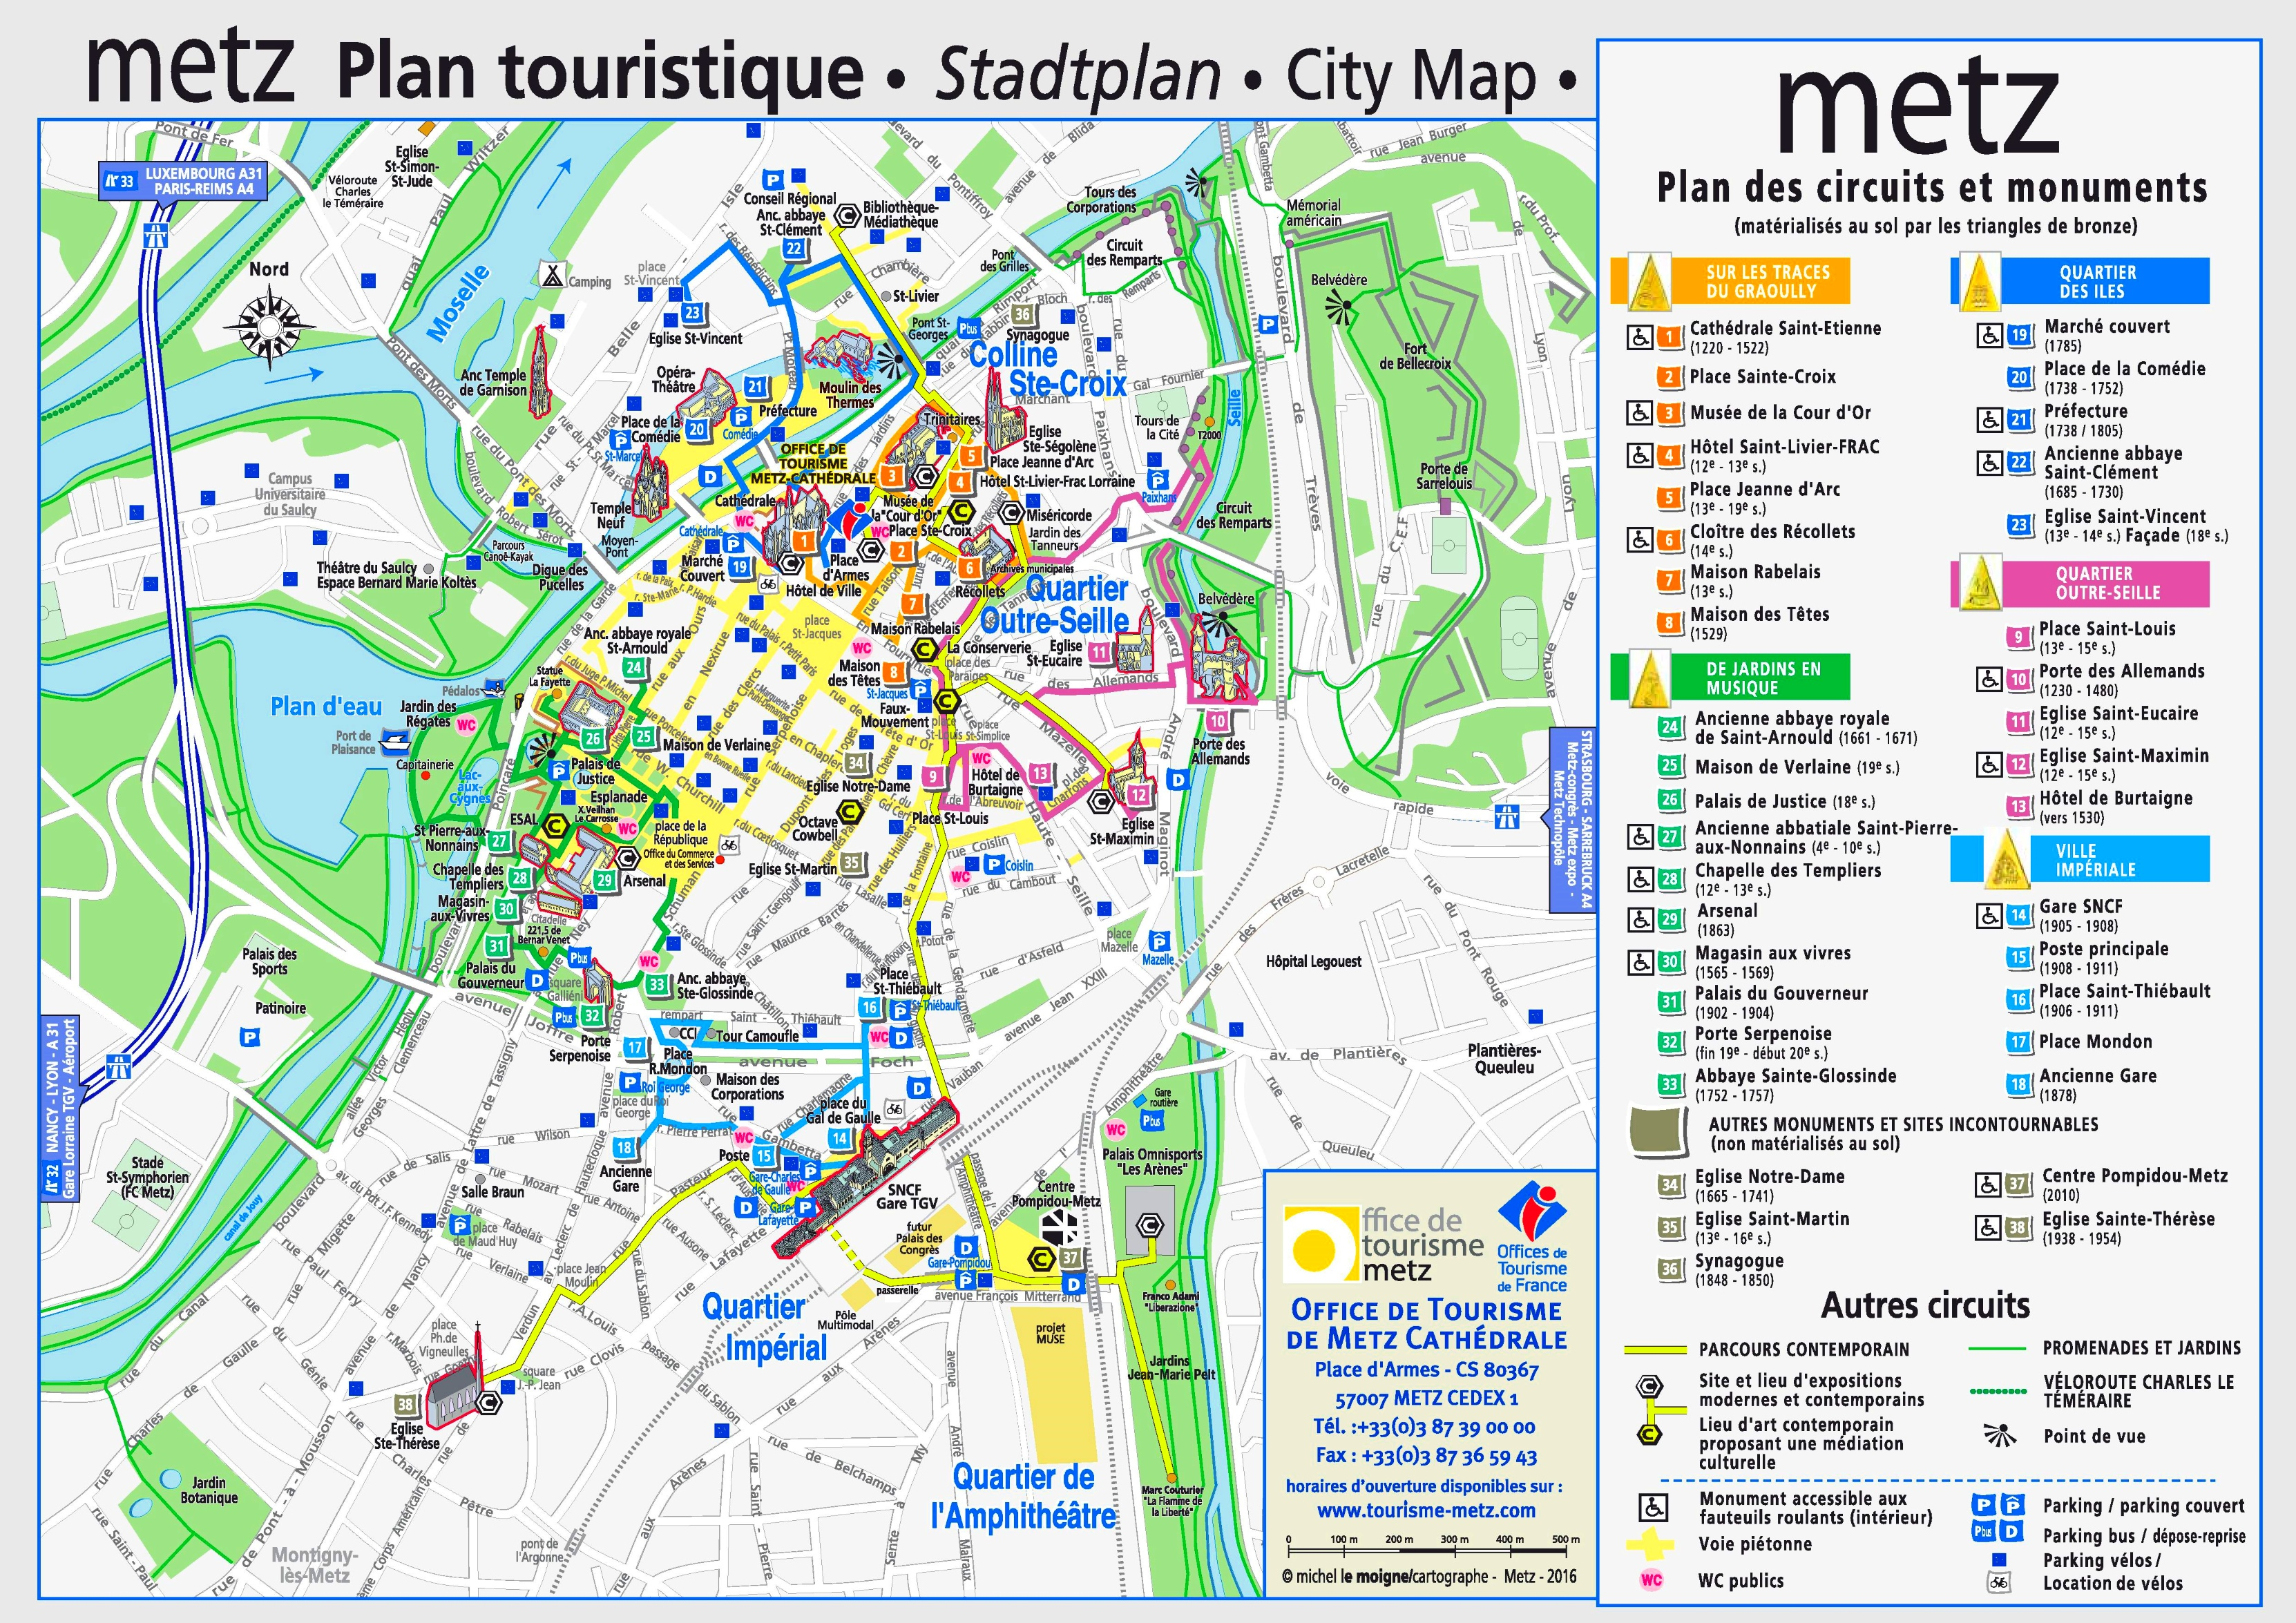 switzerland ski resorts map with Metz Tourist Map on E b 1 4 366 Ch ex Lac also La Rosiere moreover Soll as well Resort Skimap in addition Andorra Ski Holidays.